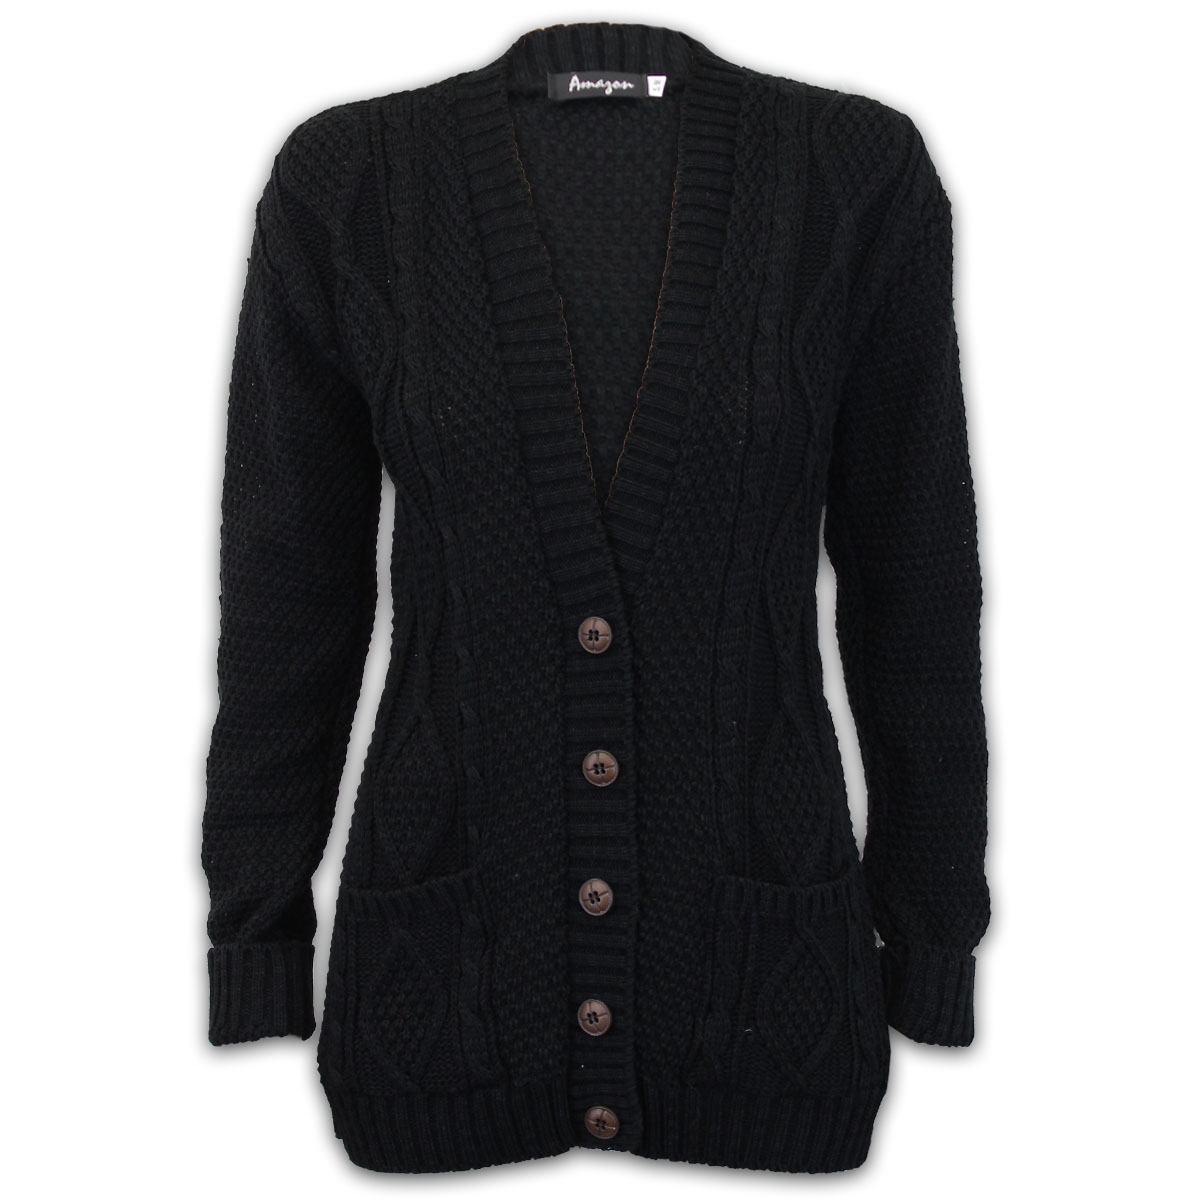 0fd96ee00e281 Ladies Cable Knitted Womens Jacquard BOYFRIEND Chunky Cardigan ...